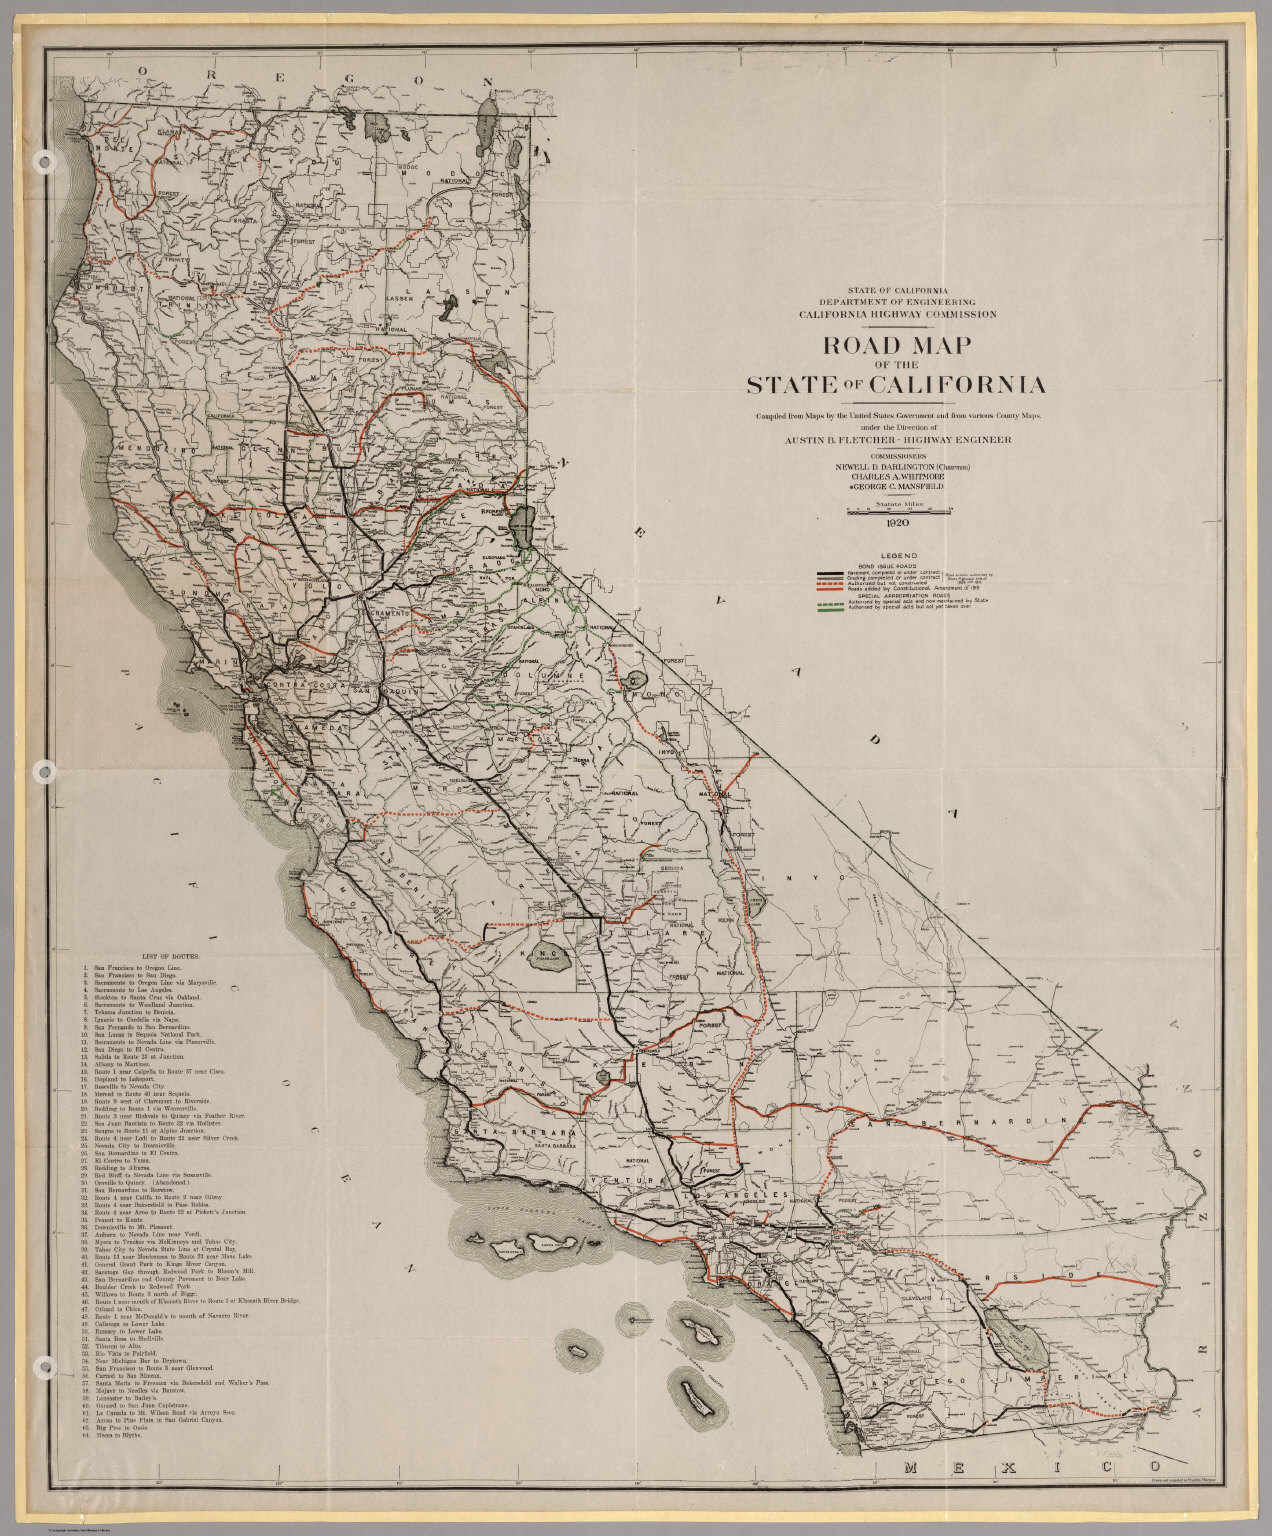 Road Map of the State of California, 1920. - David Rumsey Historical California S Map on